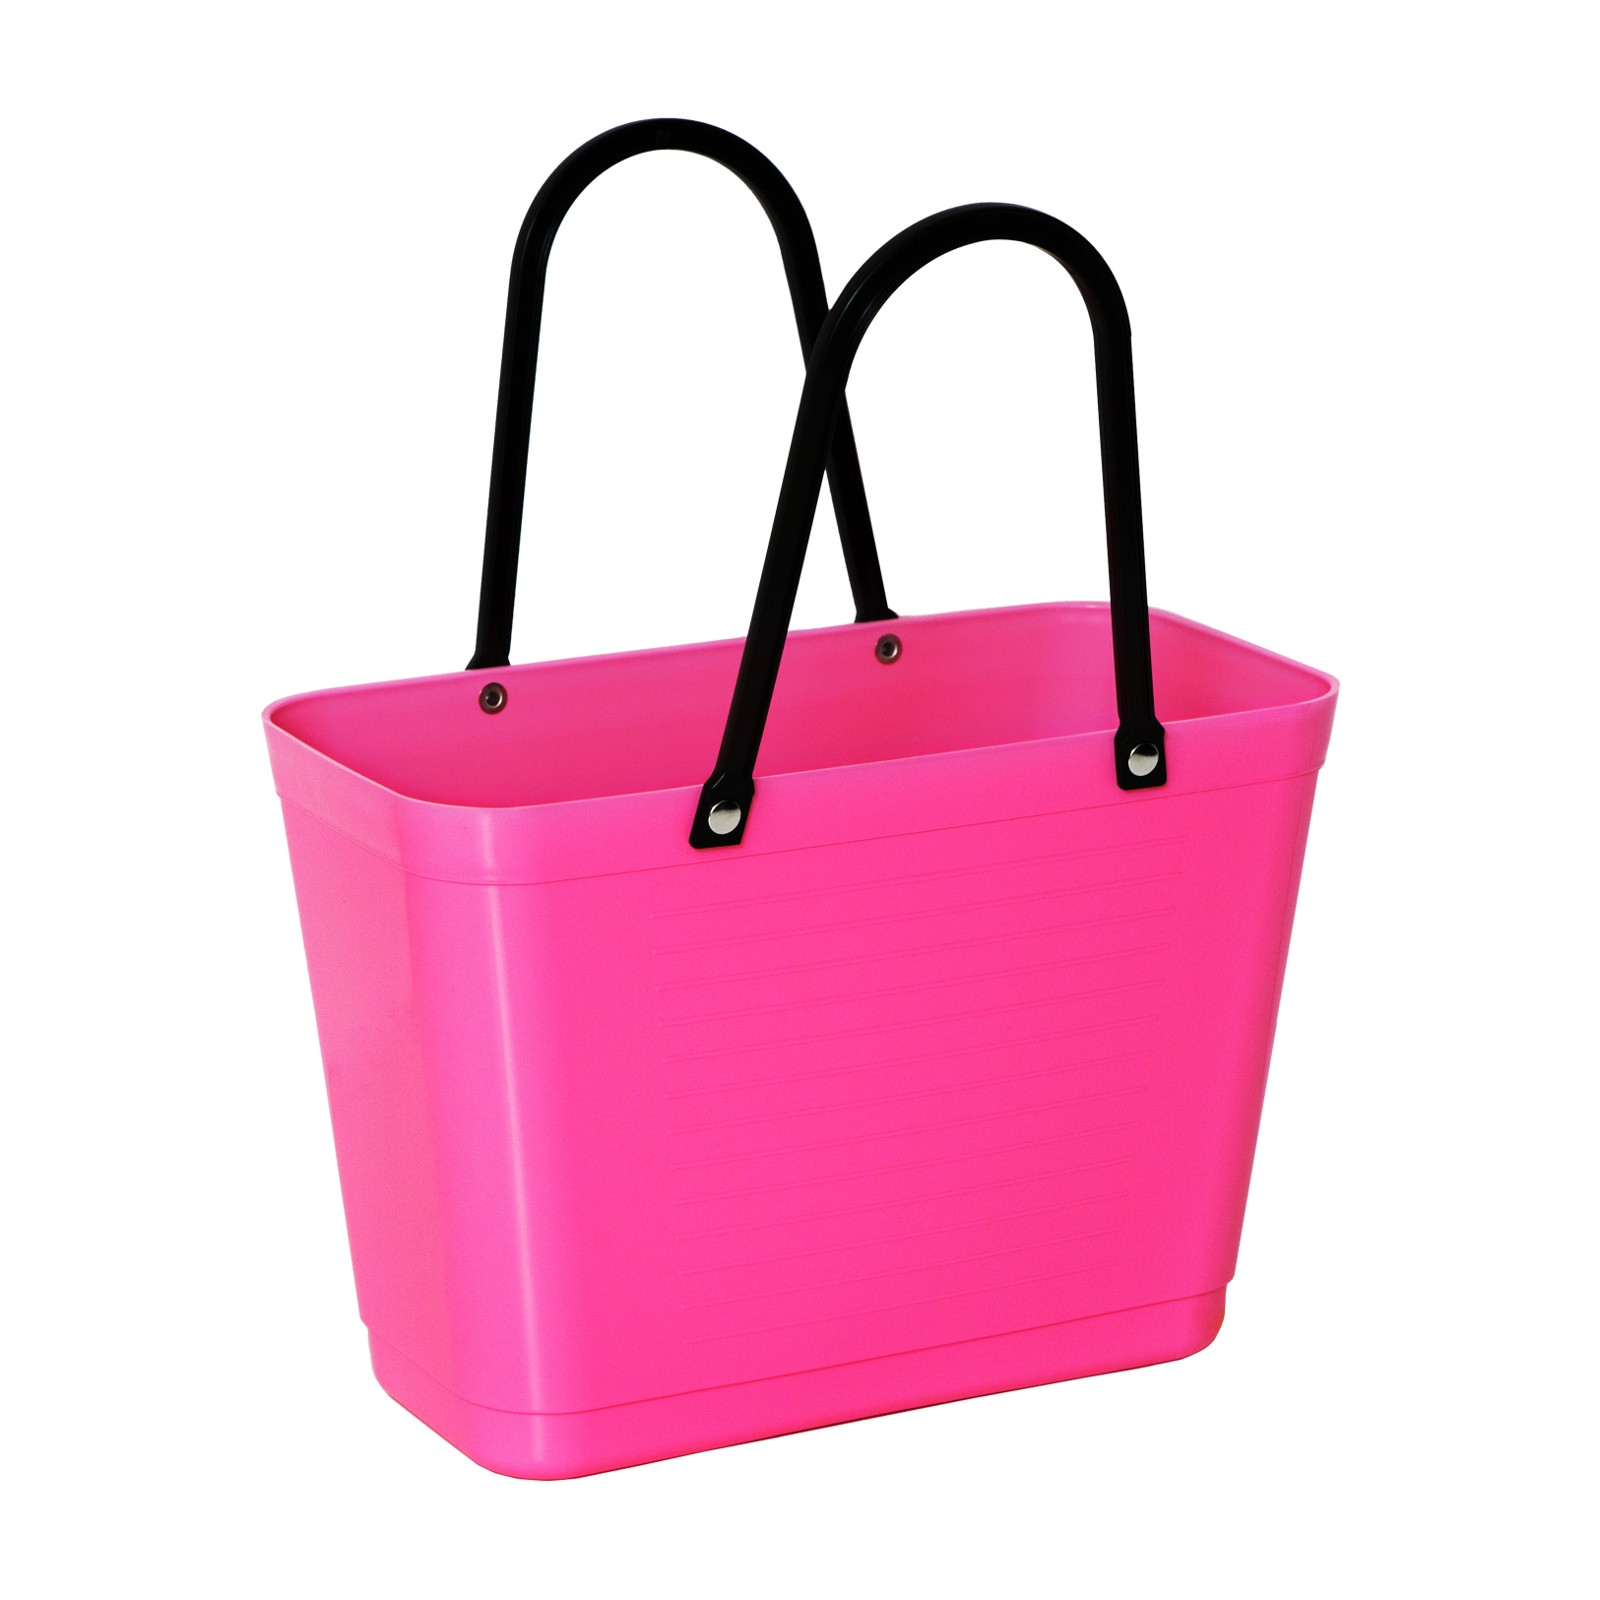 hinza 210-hinza-bag-small-hot-pink